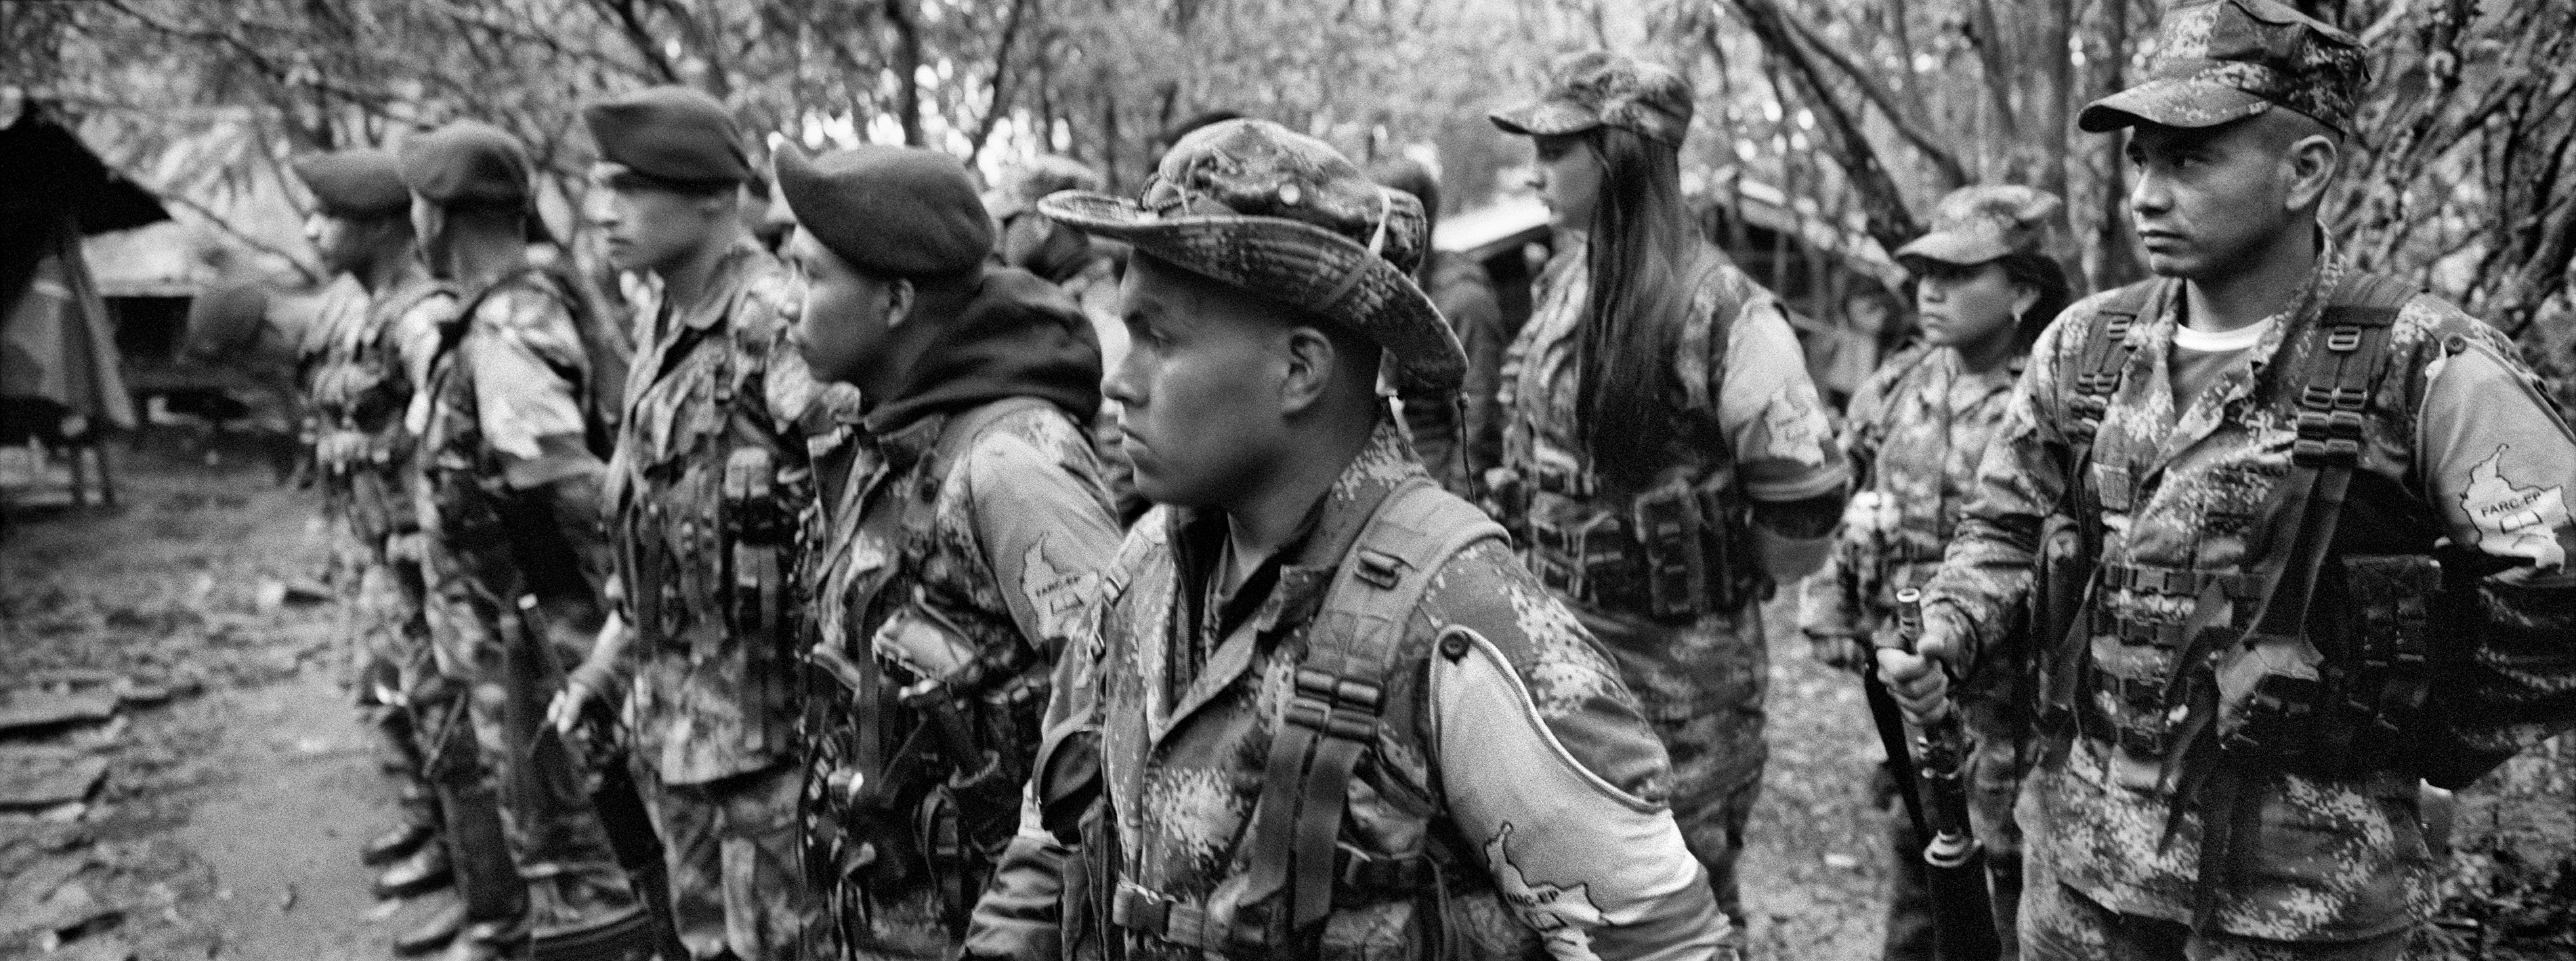 FARC guerrilla members  in training, July 2016. A peace agreement was reached in Havana, Aug. 24, 2016, ending  Colombia's 52-year old conflict that claimed more than 200,000 lives, Cauca, Colombia.